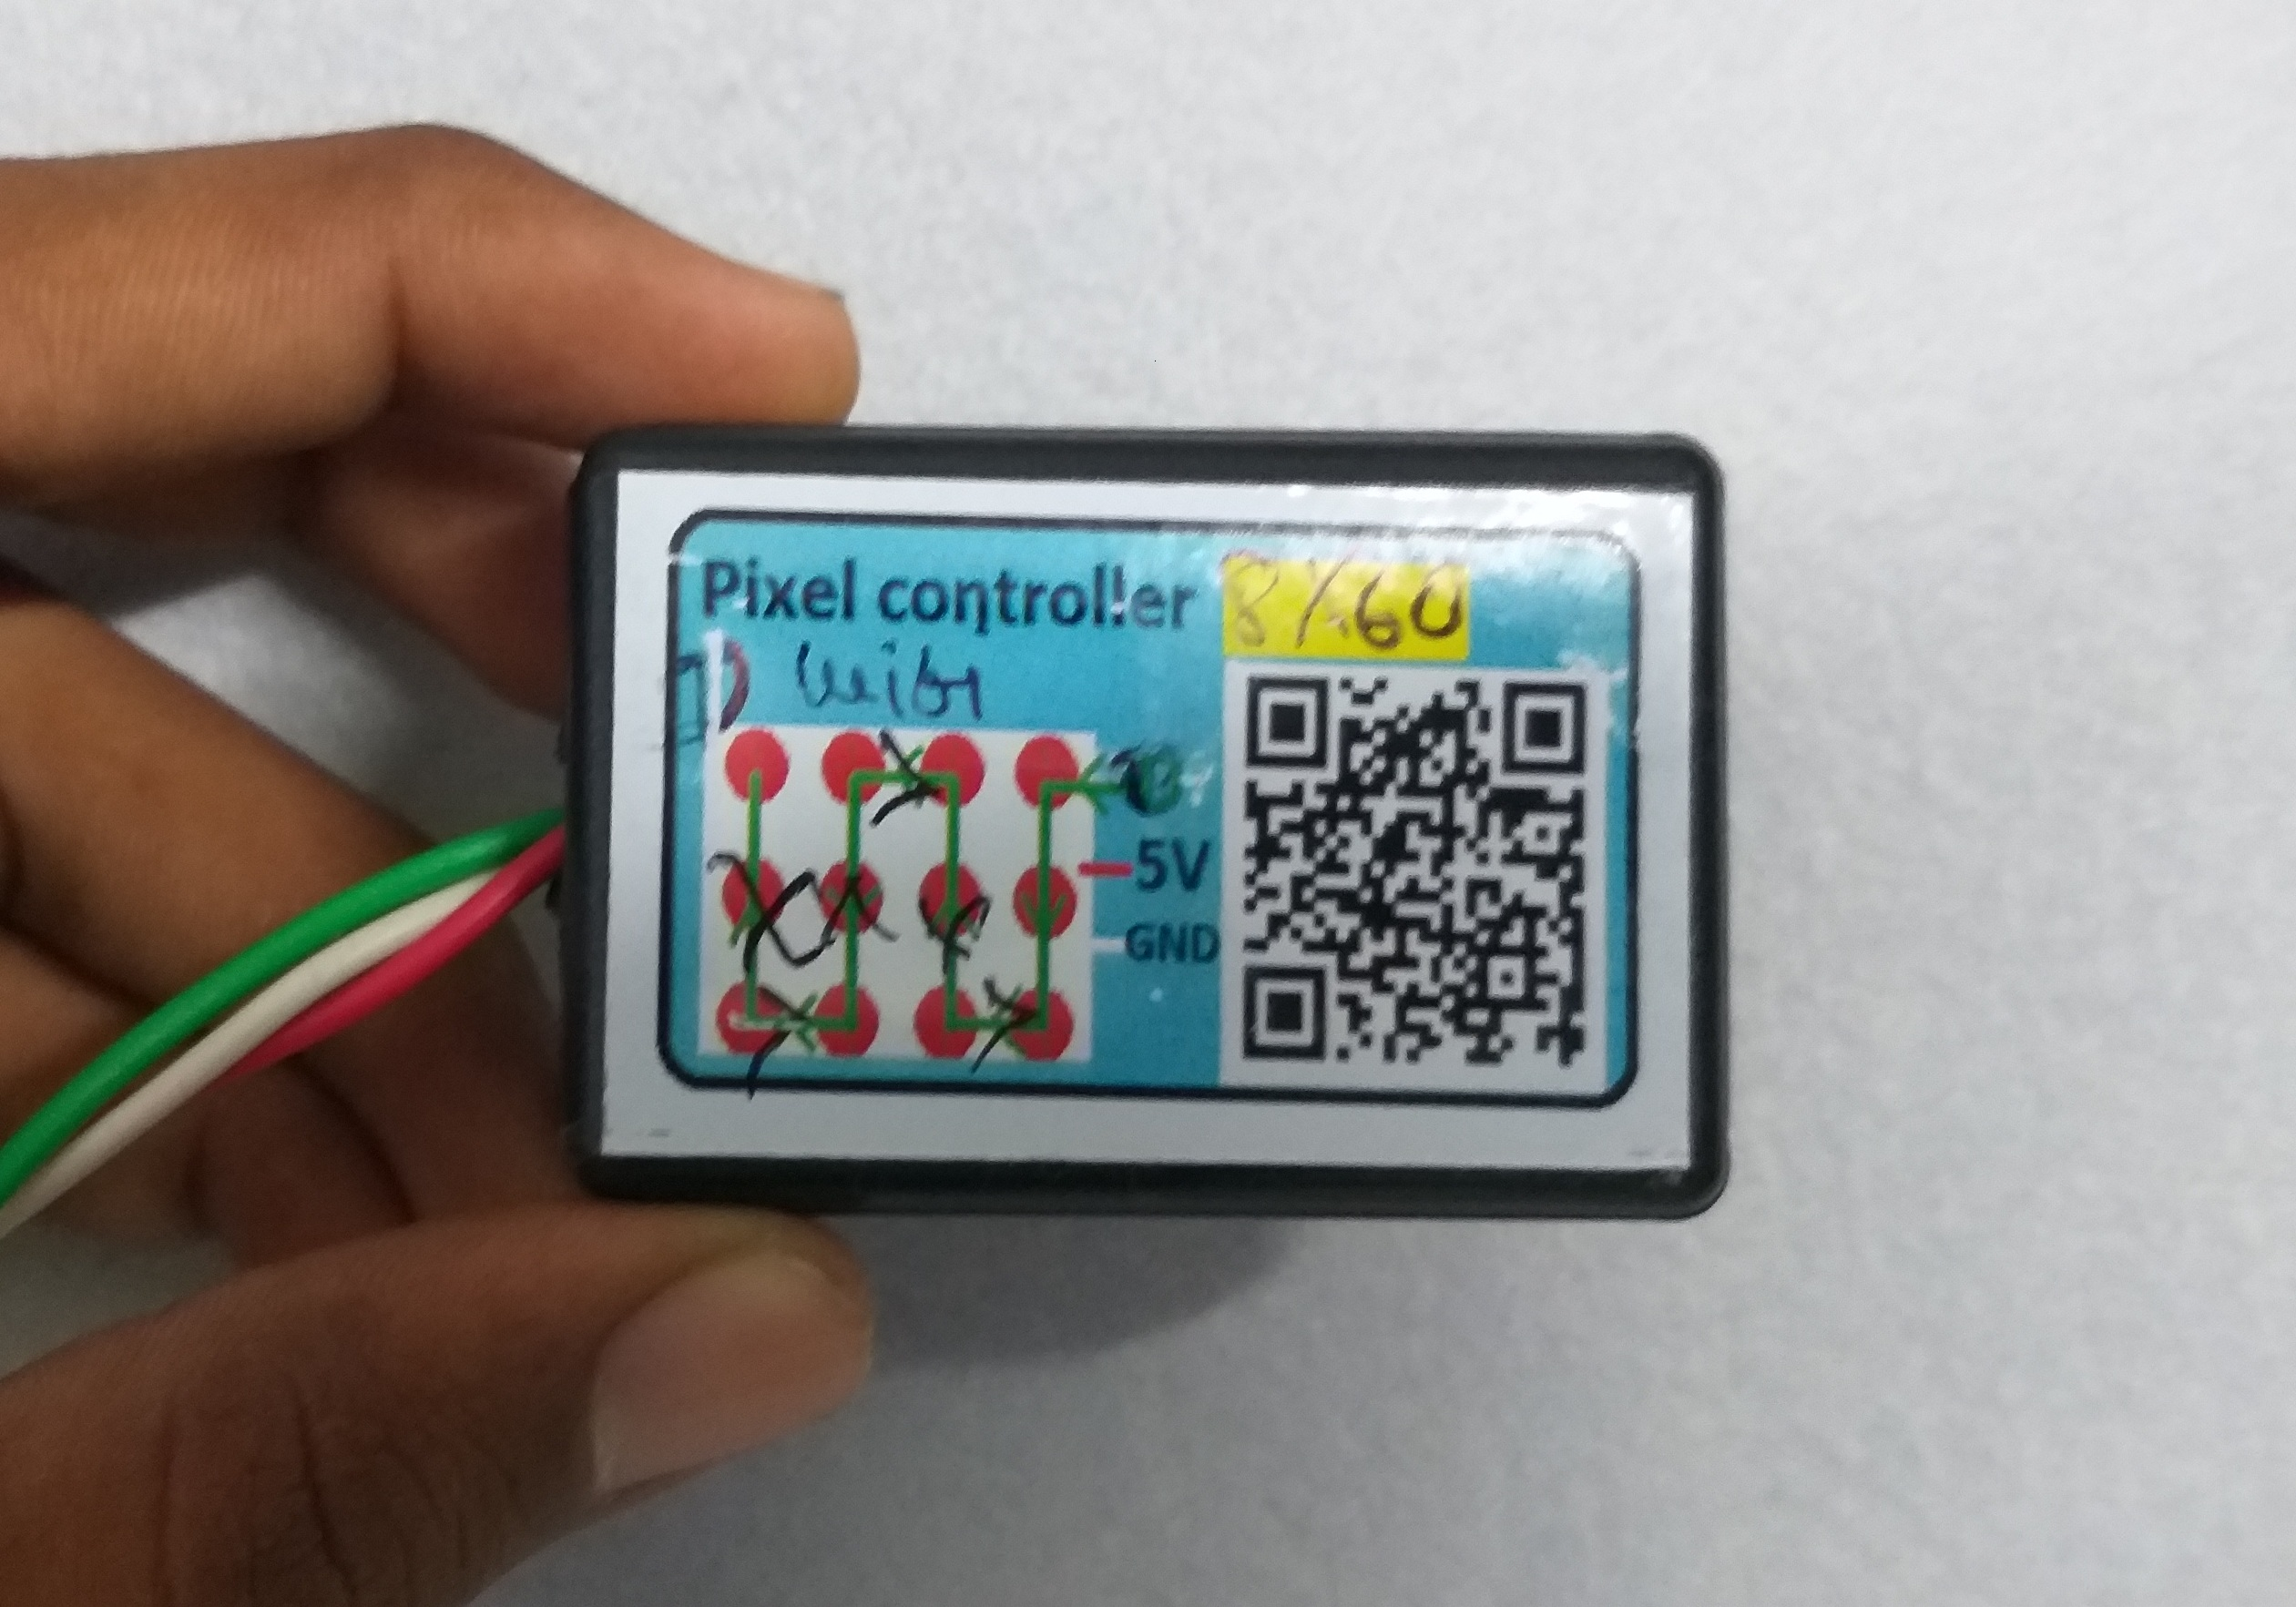 How to Make Pixel LED Scrolling Board At-Home   Pixel LED 8 X 60 Wi-Fi Controller